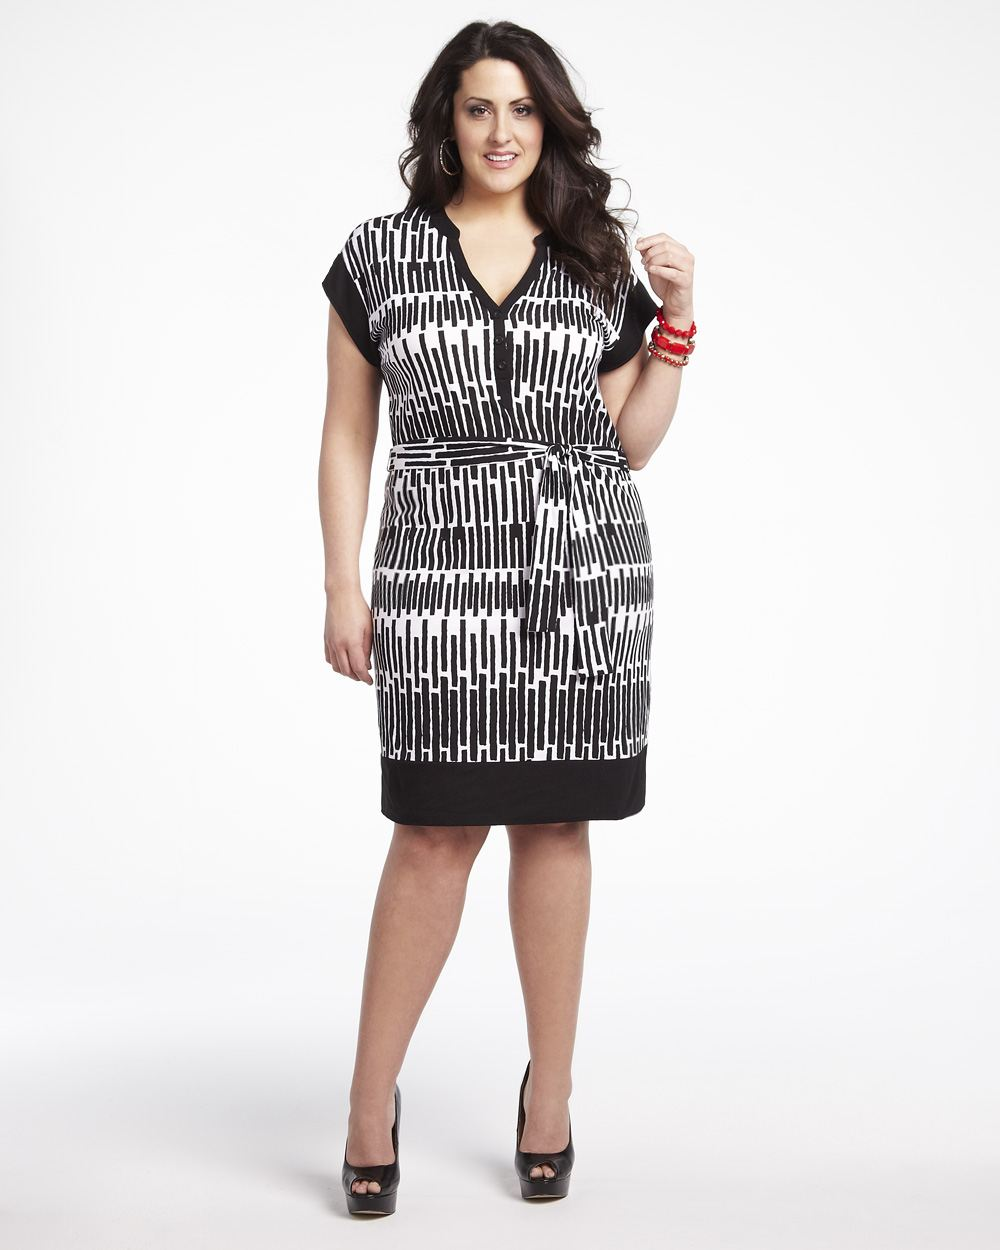 Plus size fashion clothing Girls clothing stores